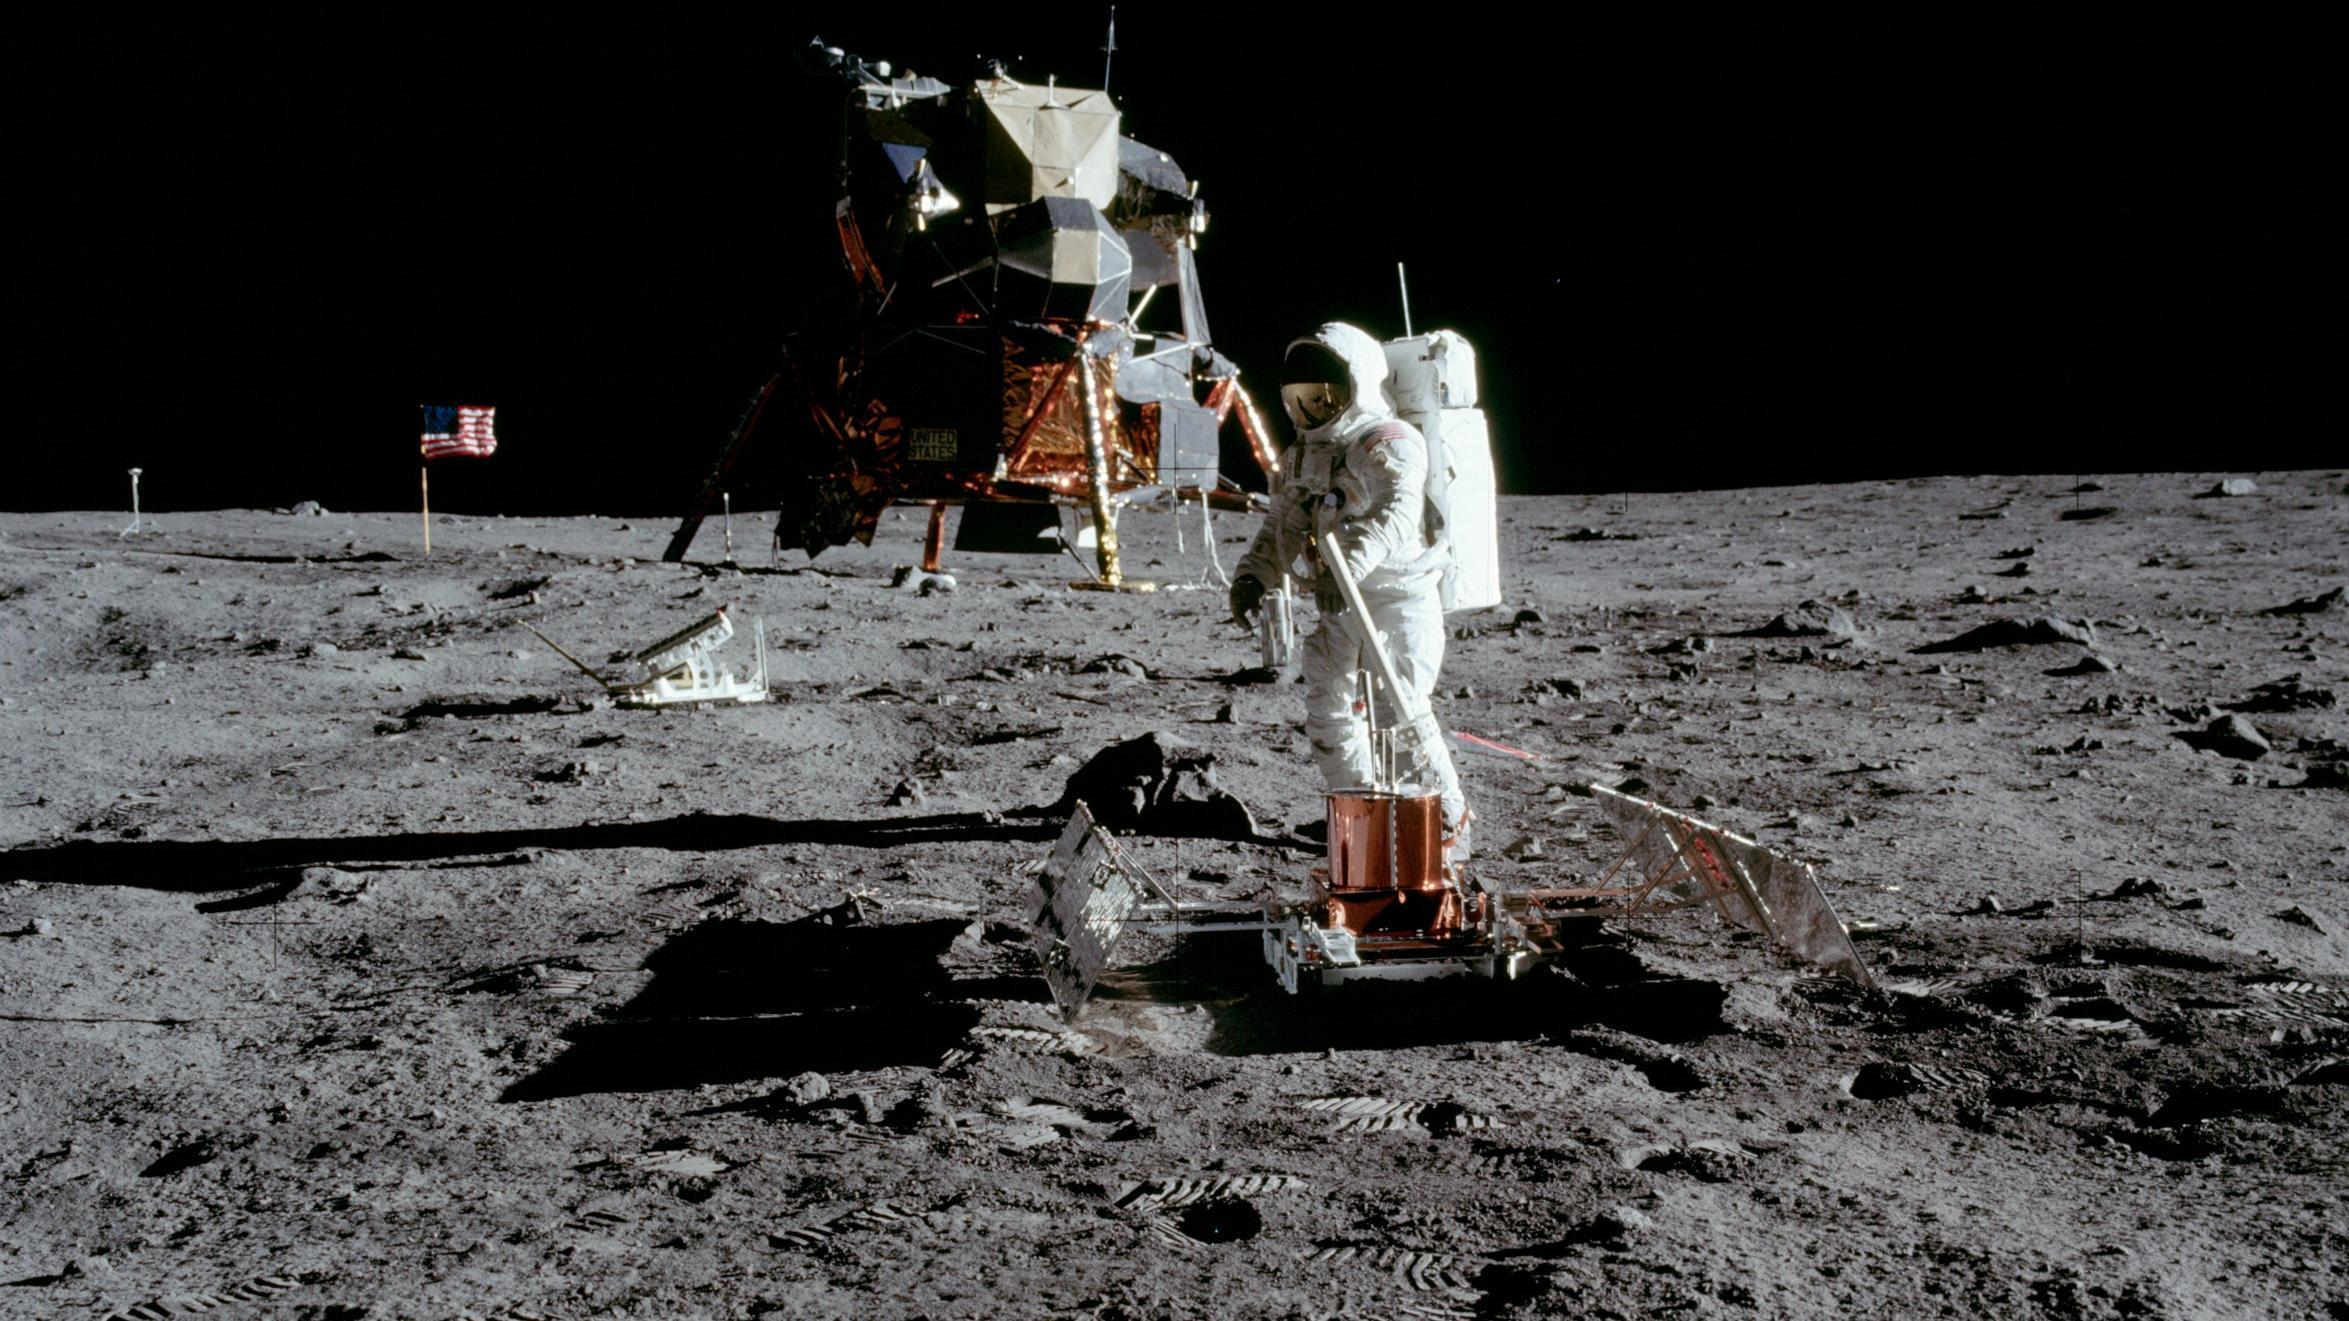 apollo 11 mission landing on the moon - photo #22